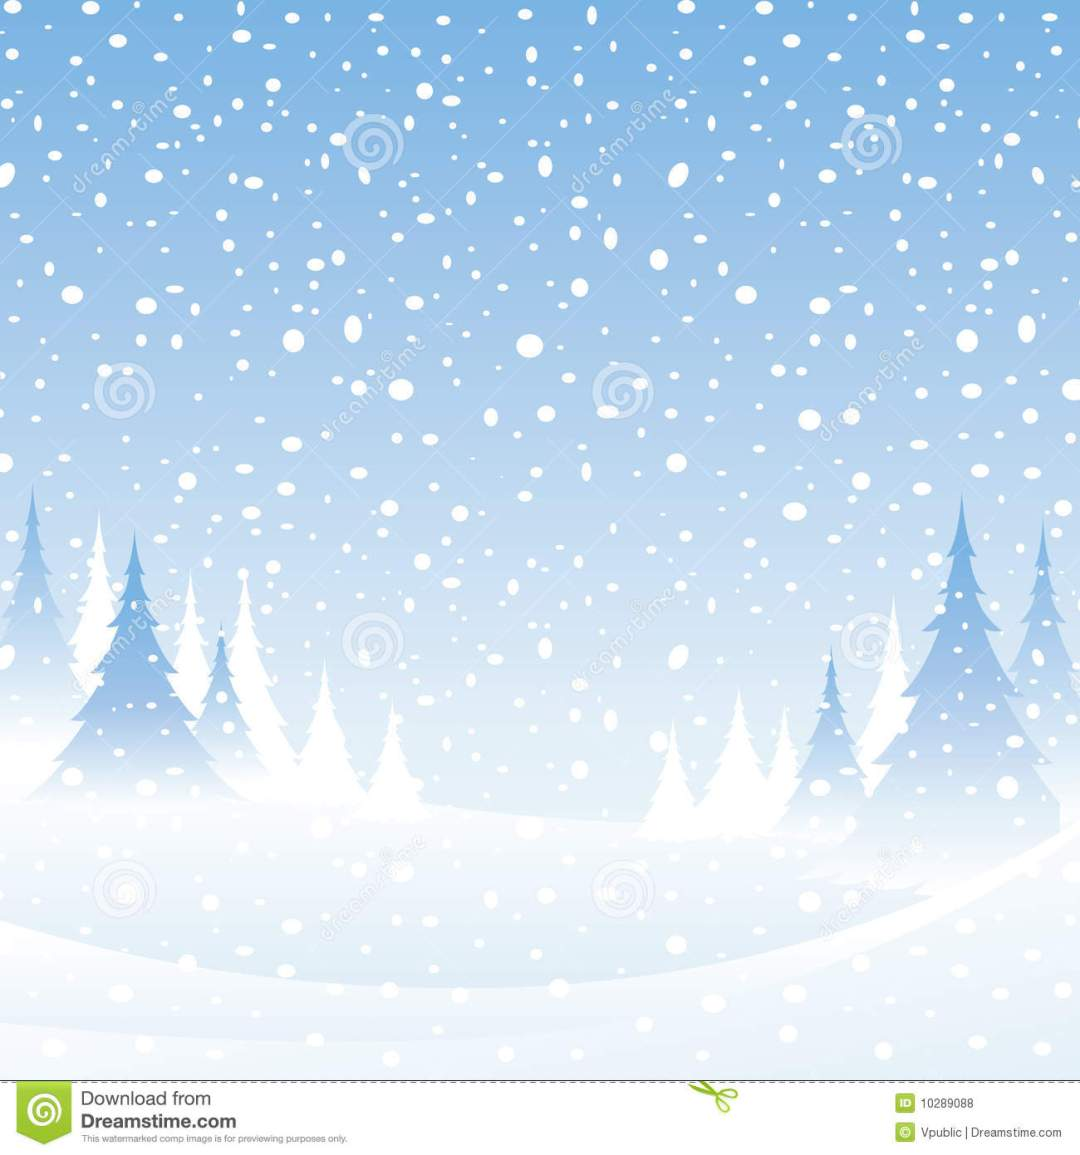 http://www.dreamstime.com/royalty-free-stock-photos-white-winter-scene-image10289088